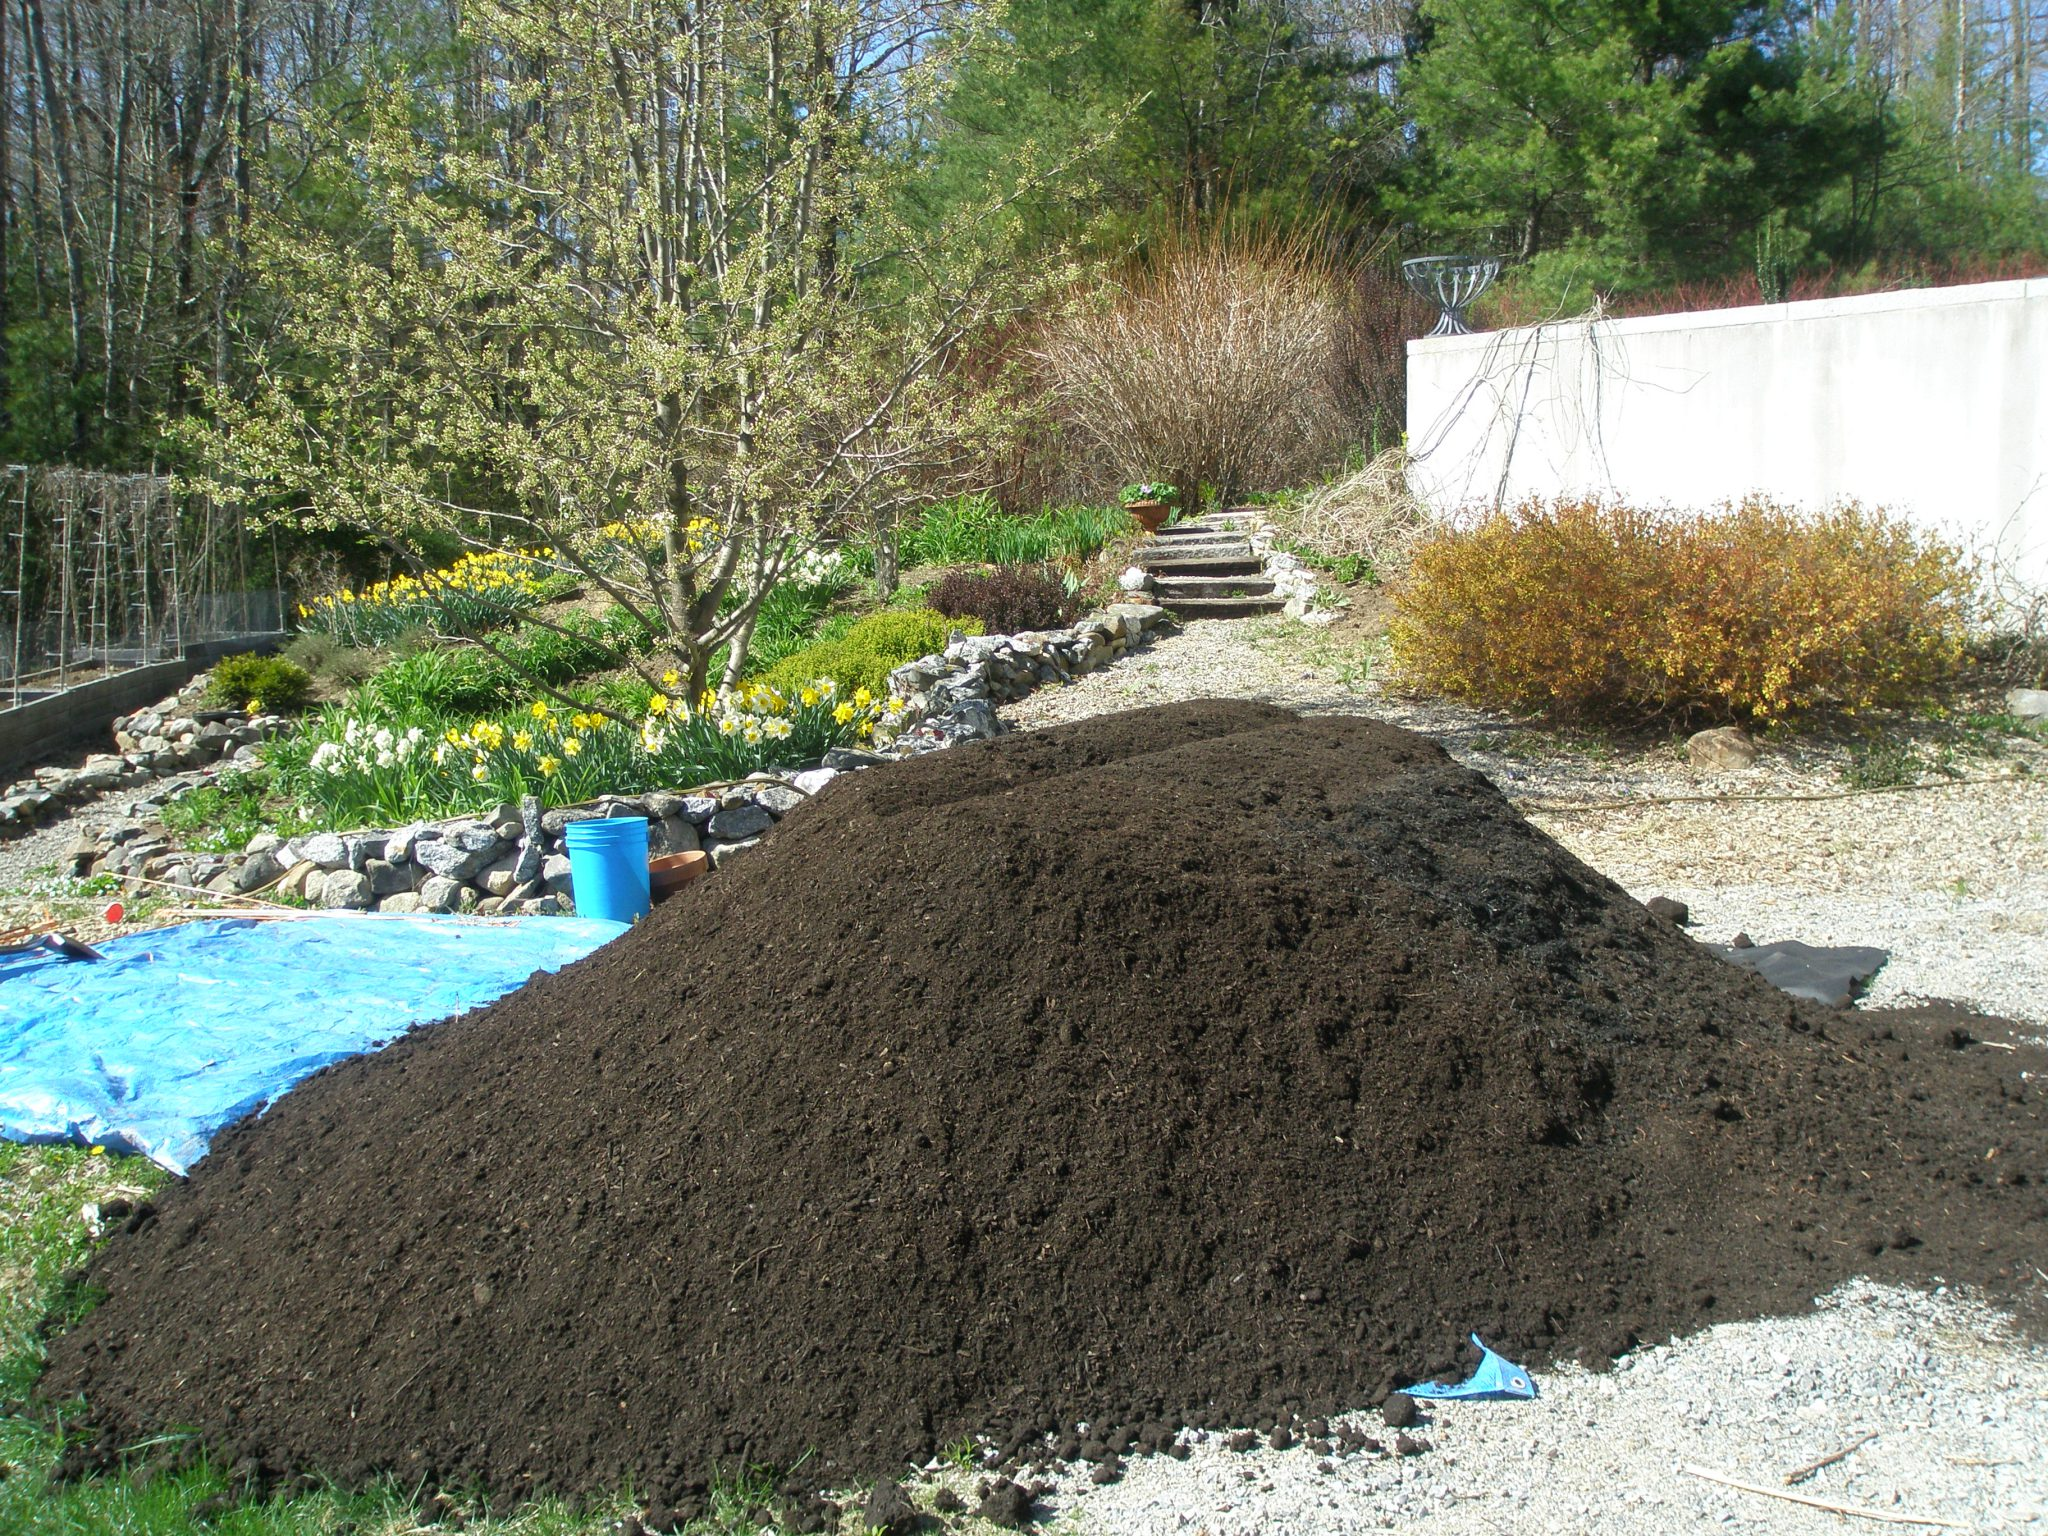 This what The Whole Nine Yards looks like. My fate, over the next month, will be to distribute this smelly, steaming pile of organic compost/mulch/and peat humus over the garden beds that need nourishment.